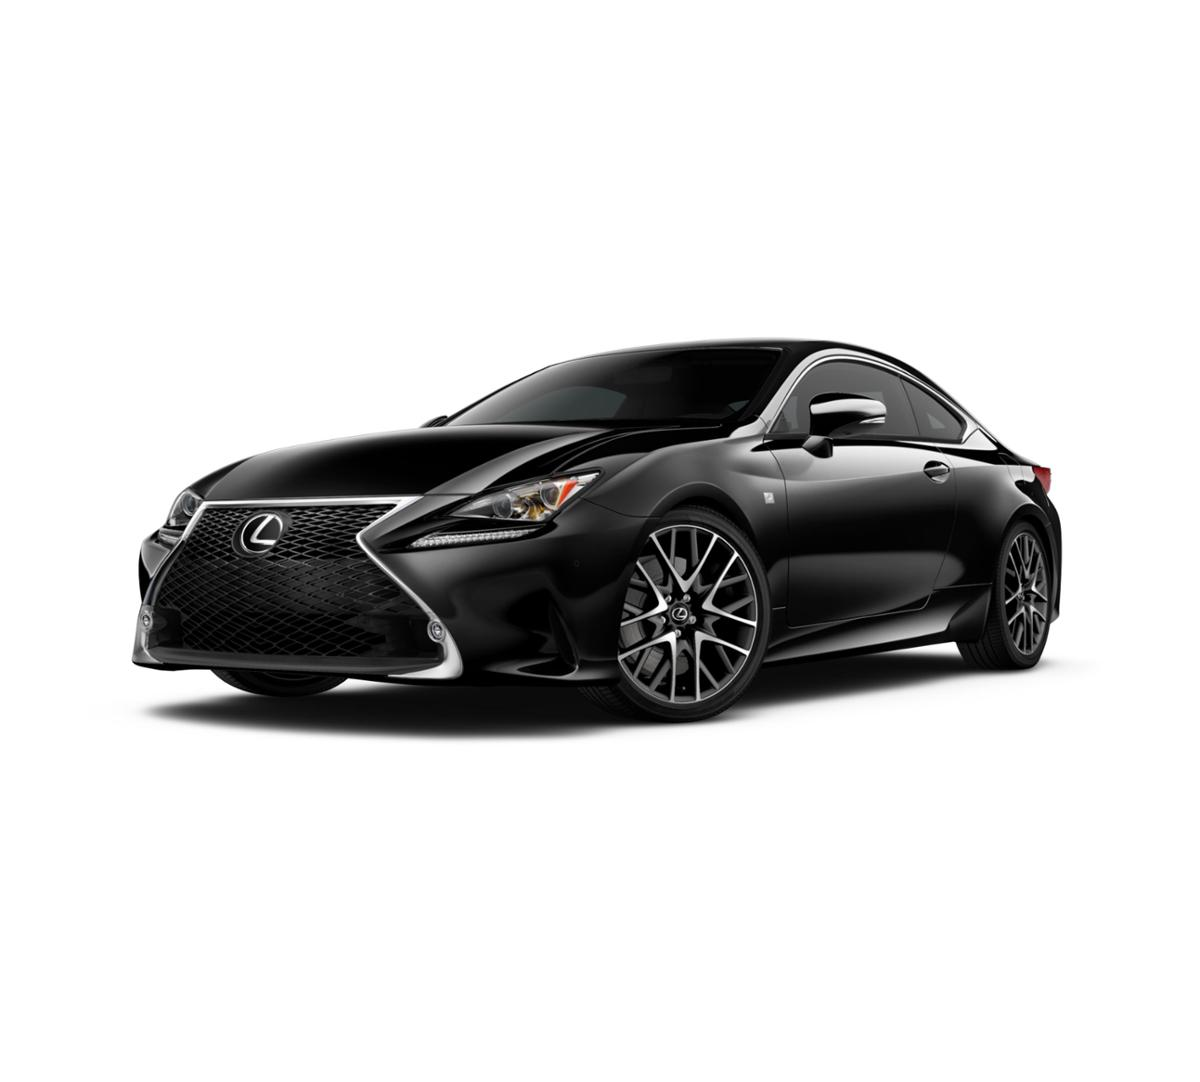 2016 Lexus Ct Exterior: 2016 Obsidian Lexus RC 300: New Car For Sale In East Haven